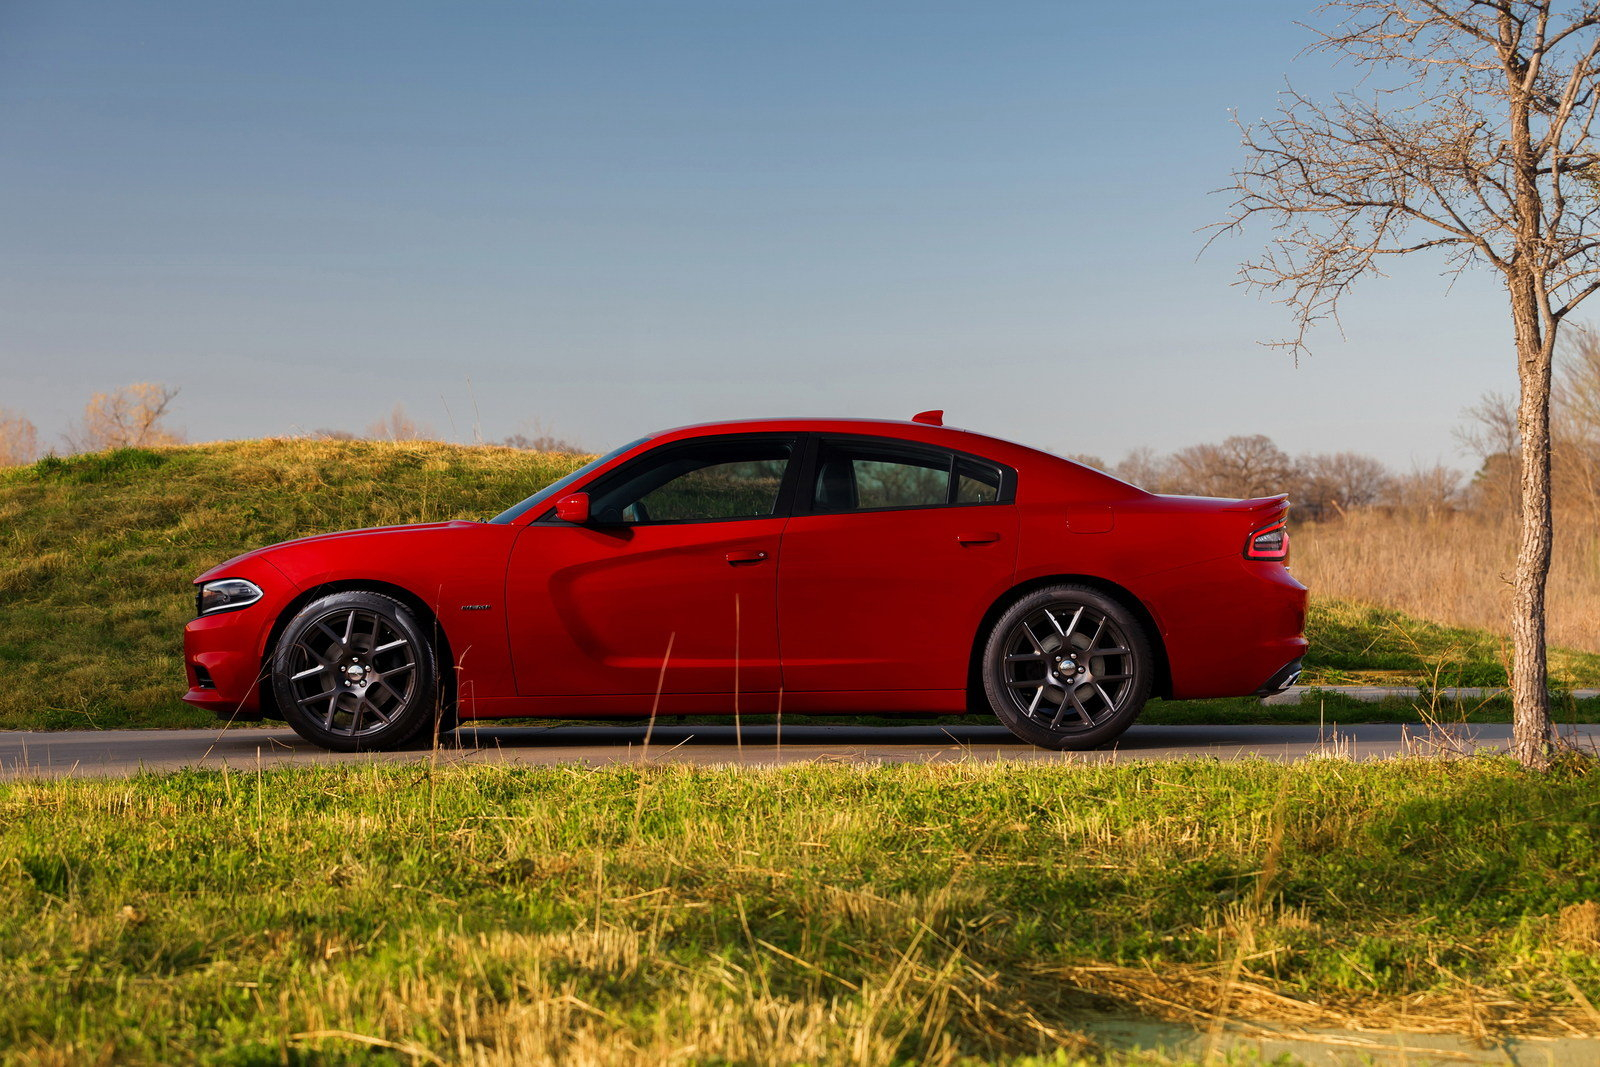 dodge charger - Dodge Charger 2015 Exterior